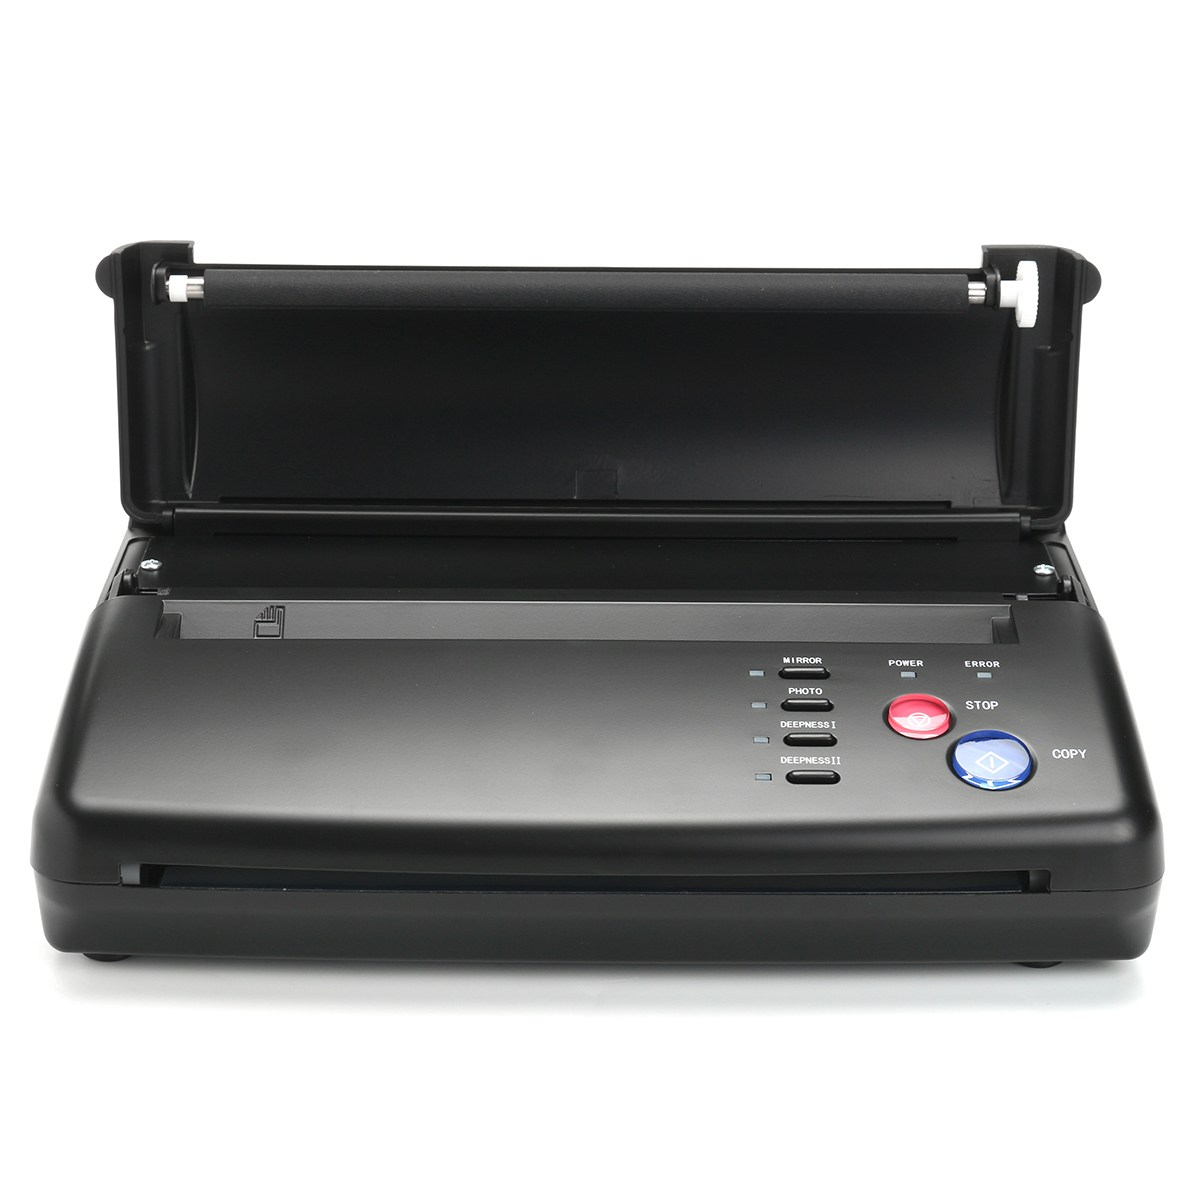 Tattoo Transfer Machine Printer Drawing Thermal Stencil Maker Copier Permanet makeup Supply With 10PCS A4 Transfer Papers цены